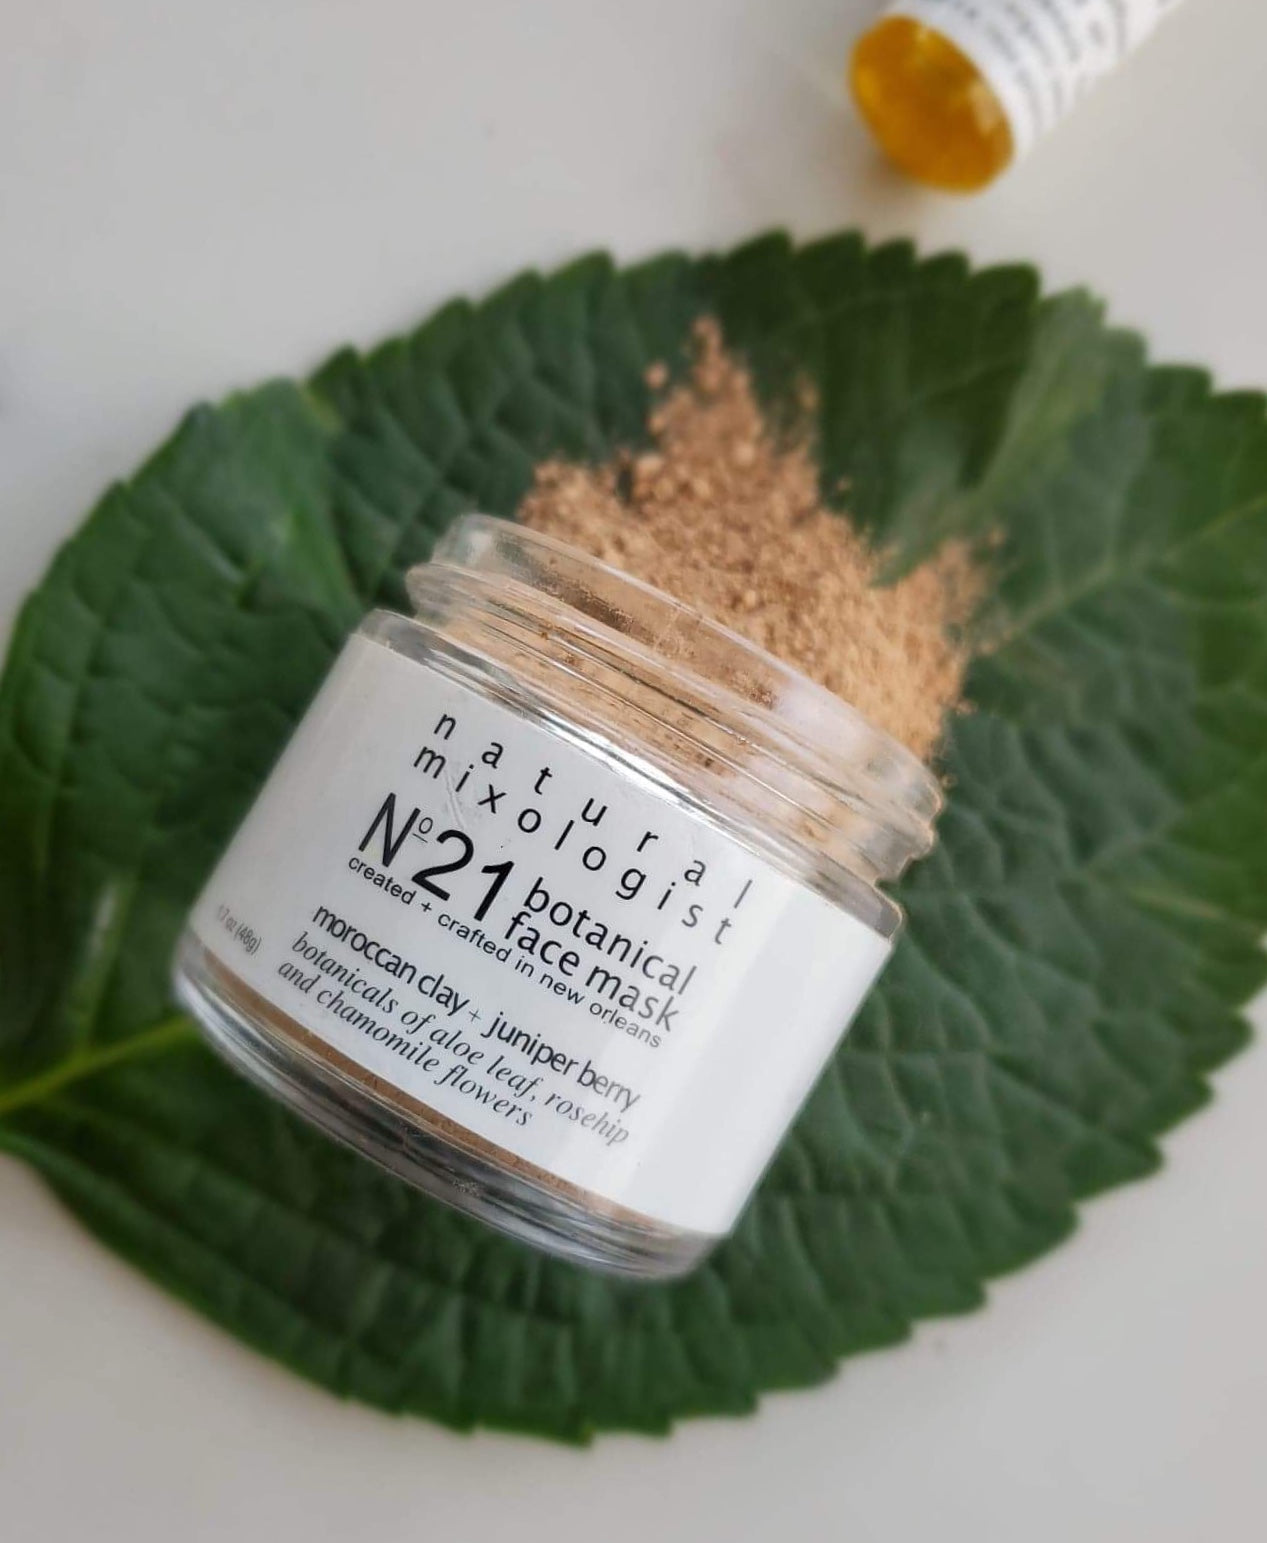 Moroccan Clay Mask for Blemishes and Acne